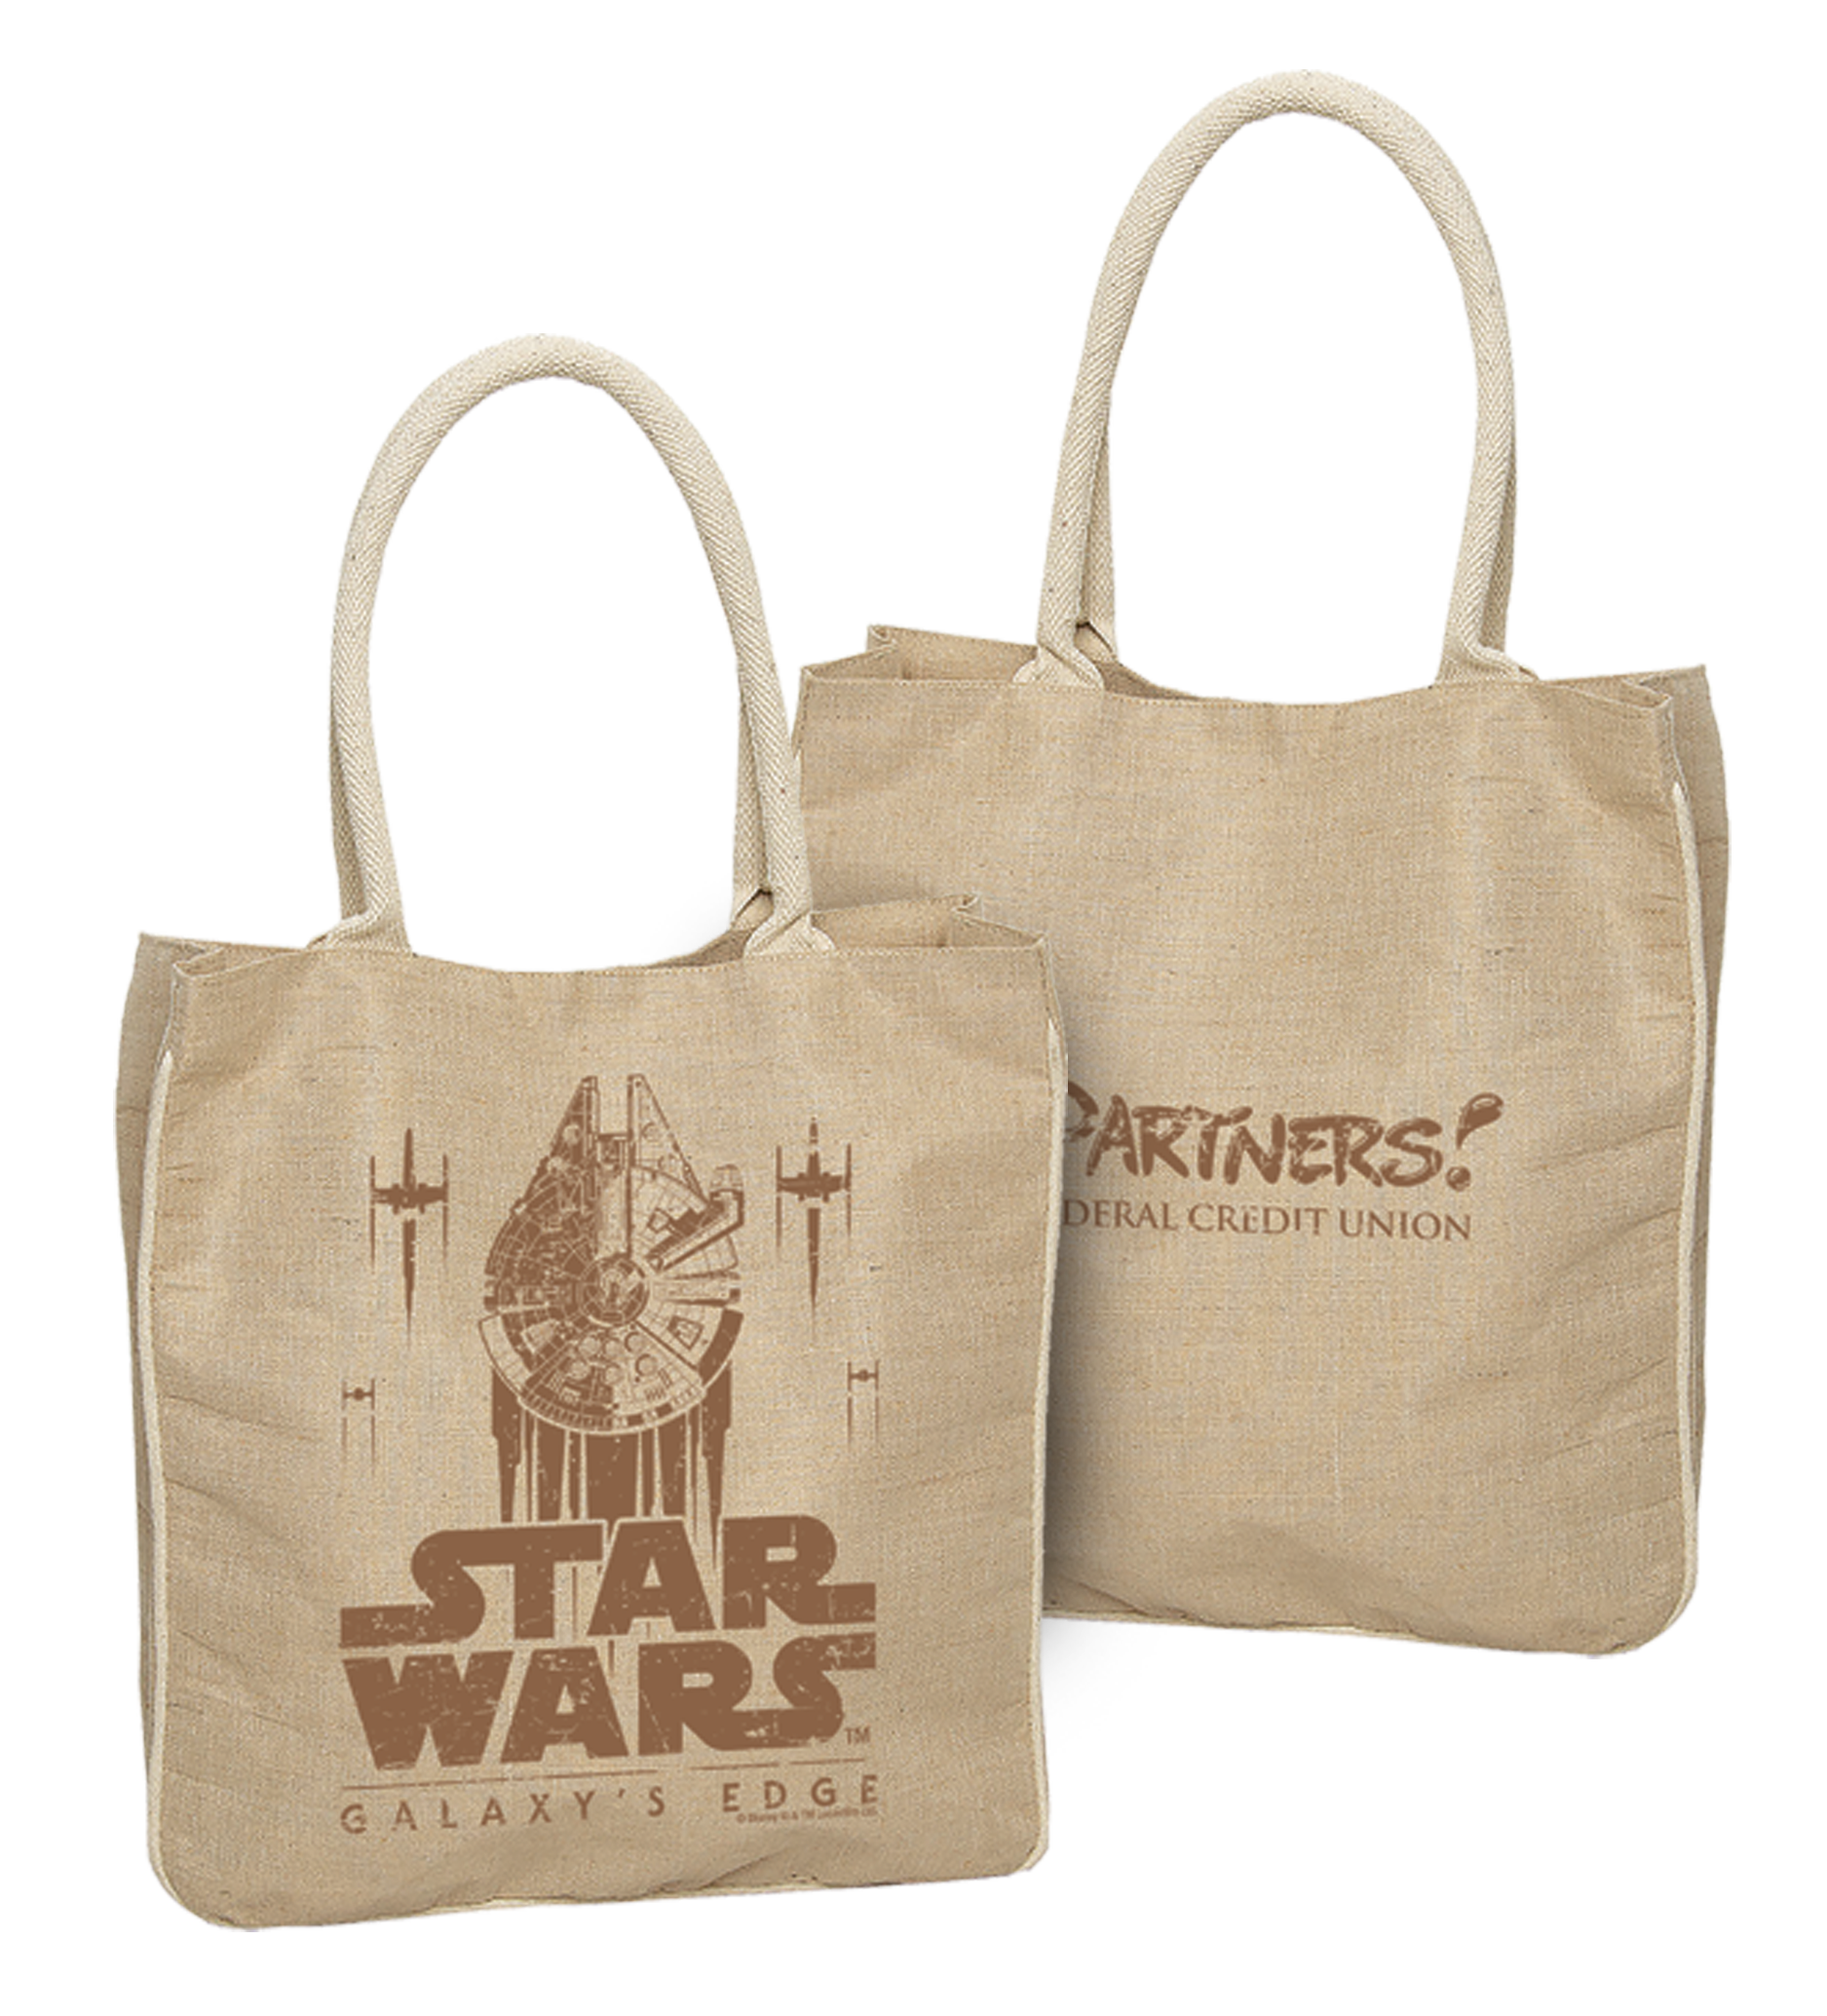 Join and receive an exclusive Star Wars: Galaxy's Edge Bag from Partners